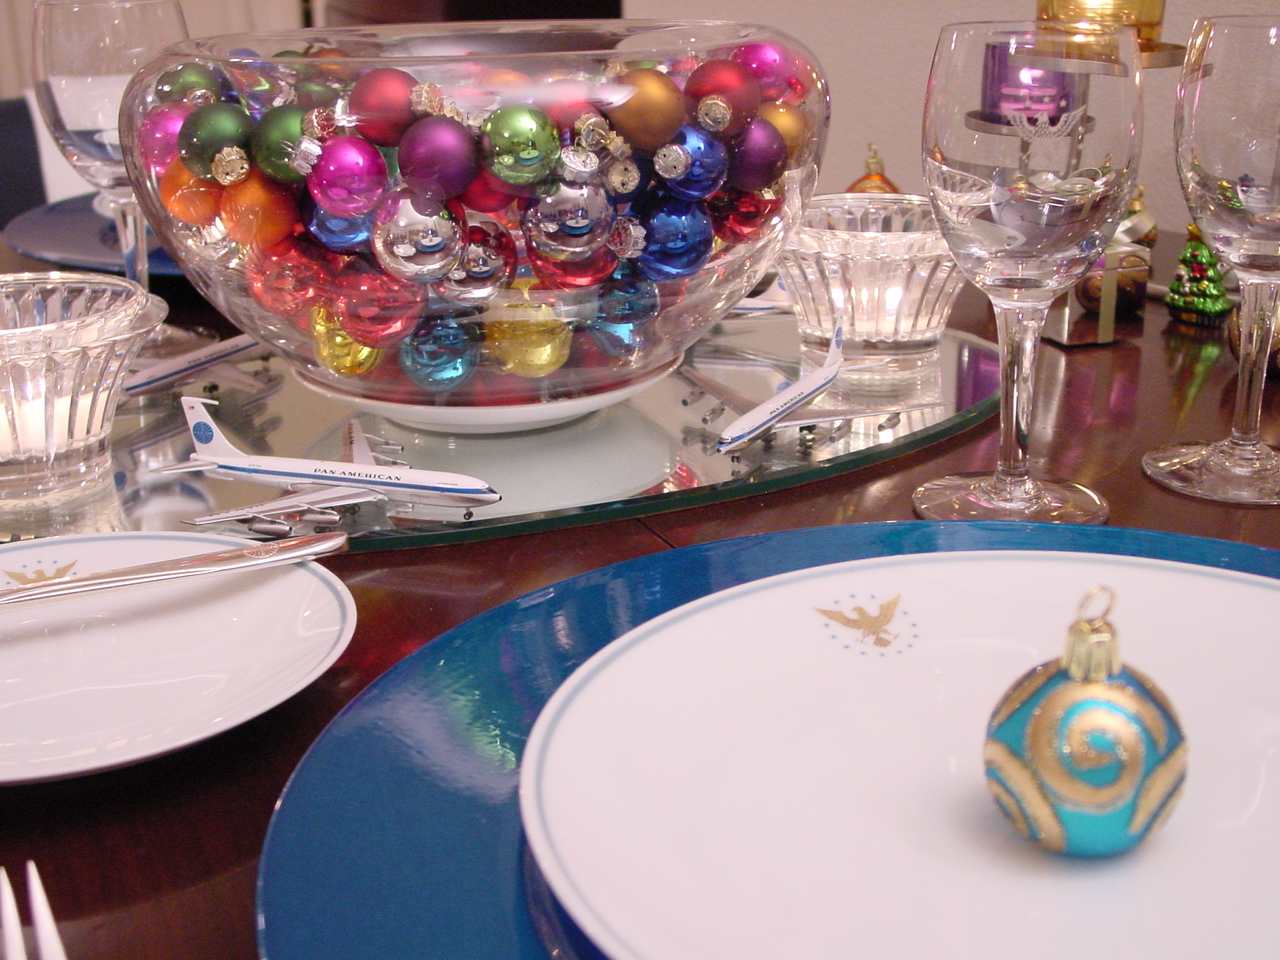 The 1960s Pan Am 'President' pattern is used with bright blue chargers and colorful holiday glass balls in this table setting.